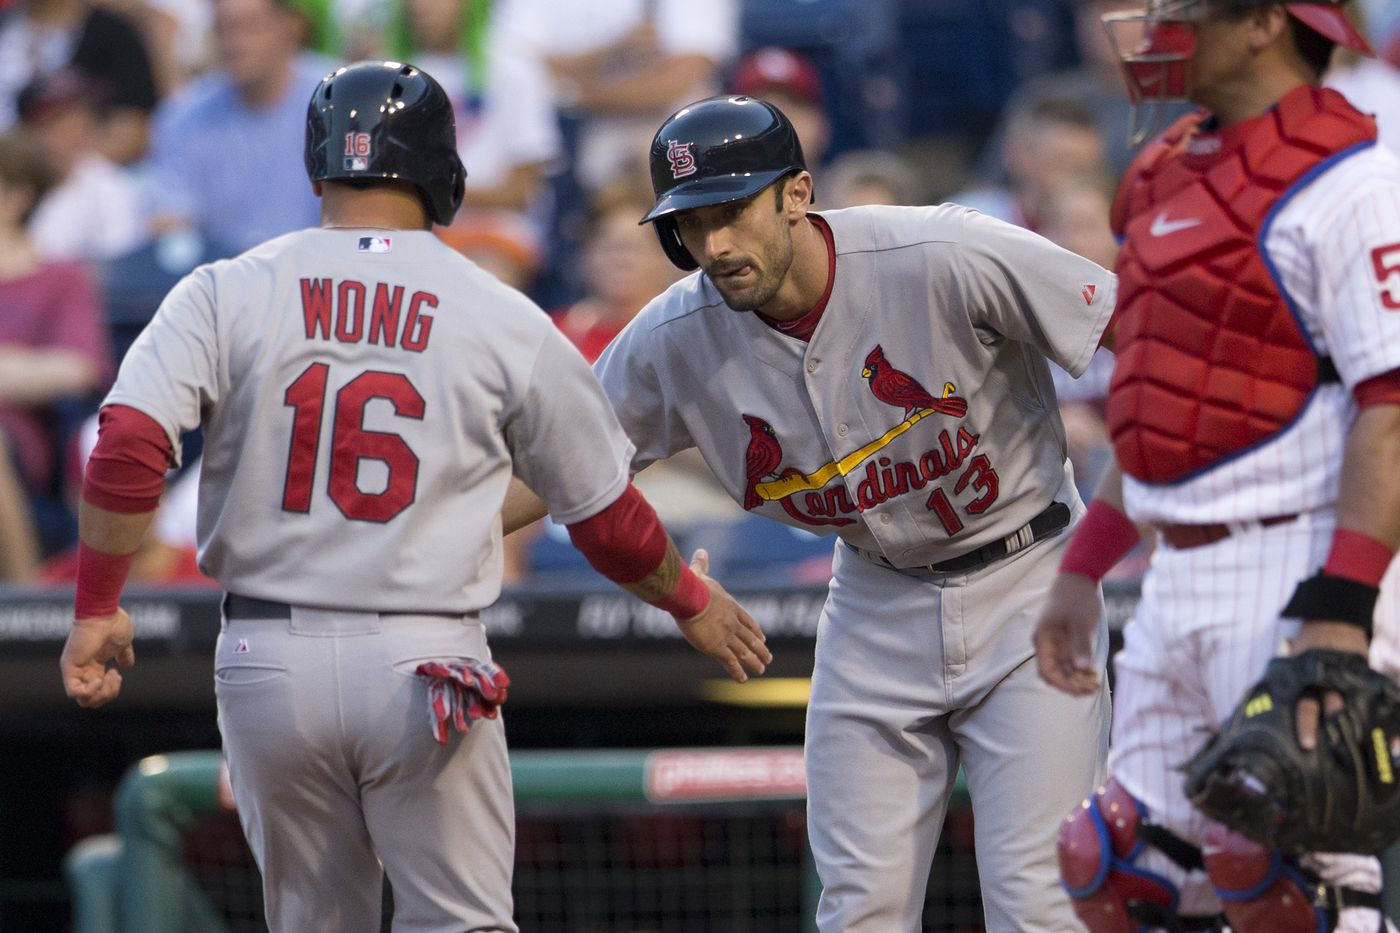 st. louis cardinals at cleveland indians series preview - let's go tribe